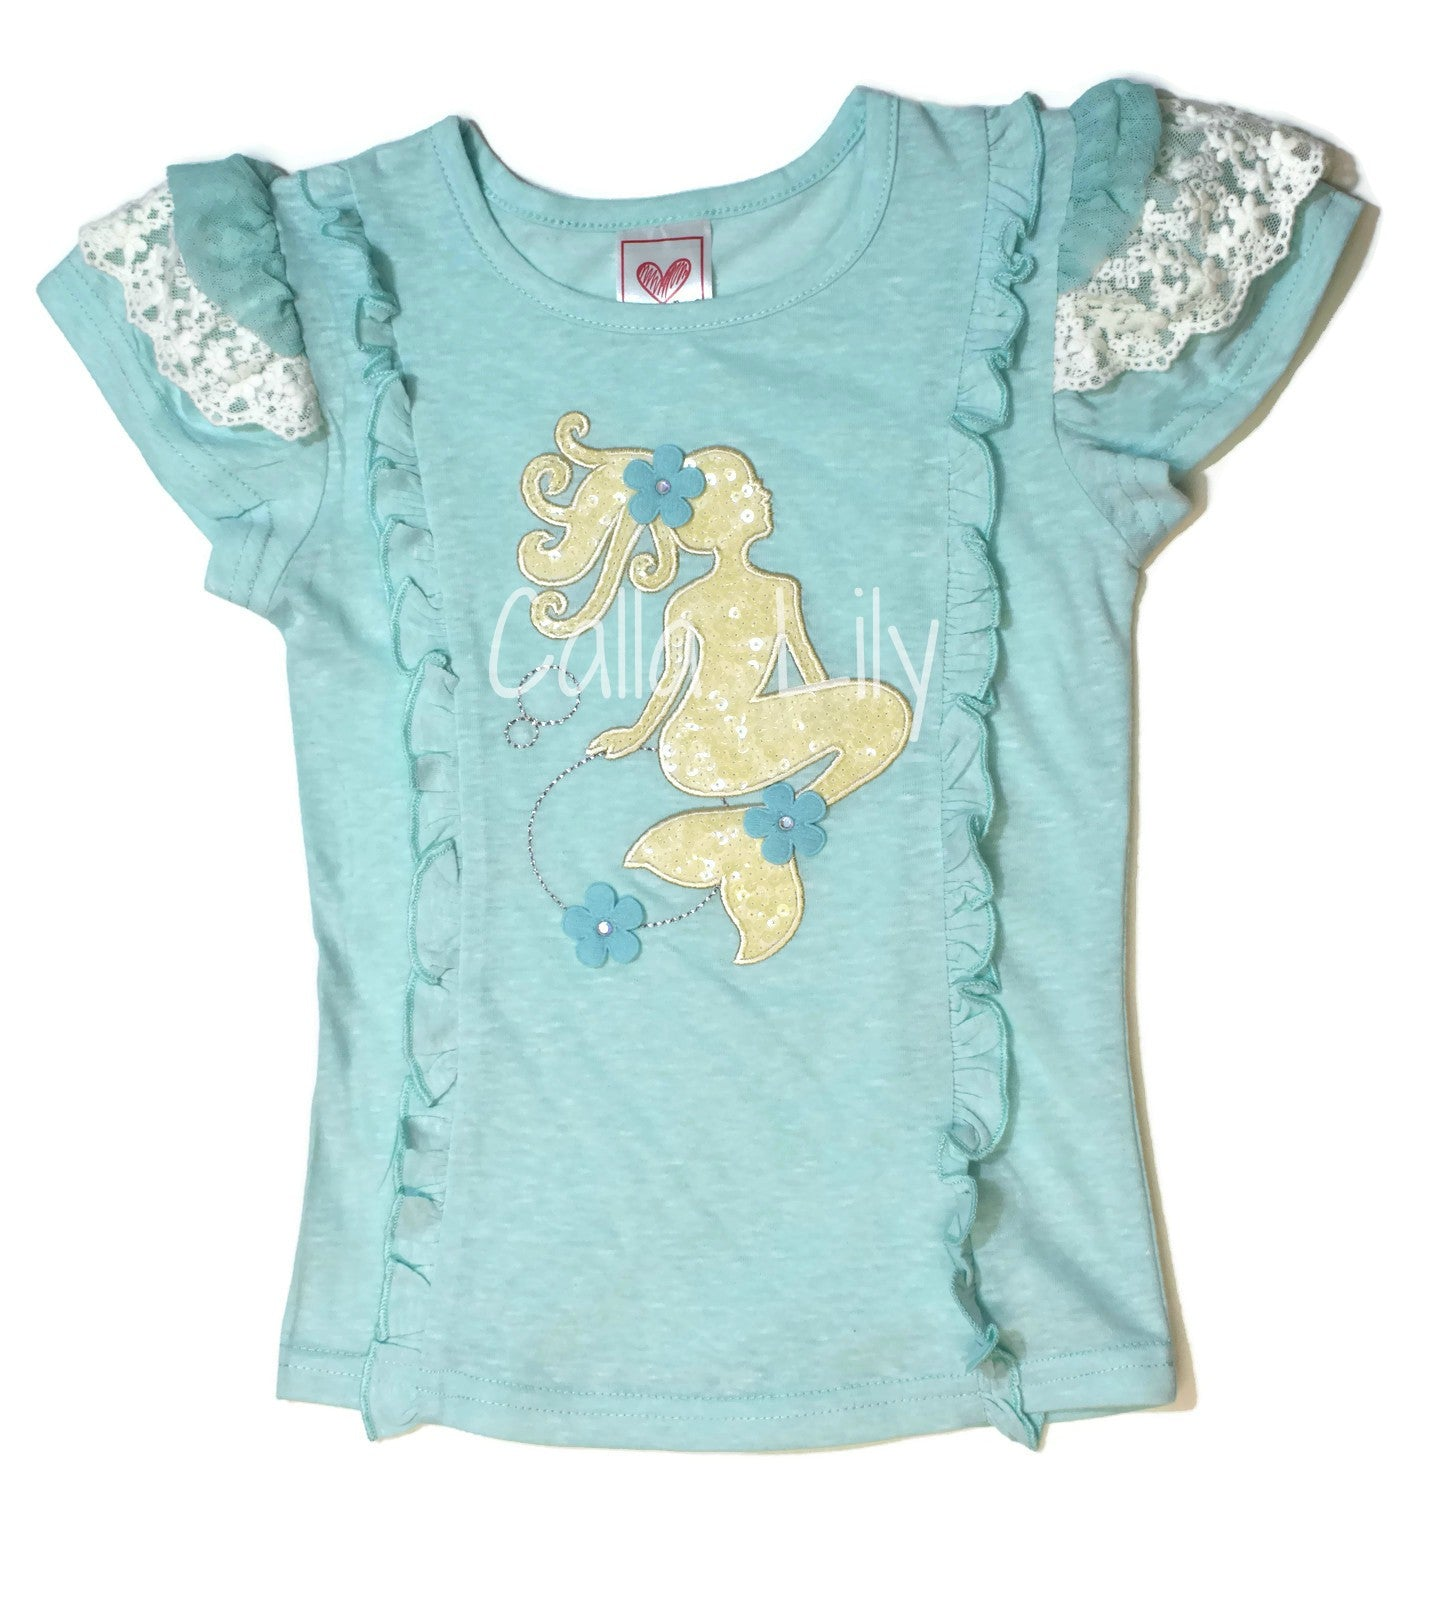 Mermaid Silhouette Tee